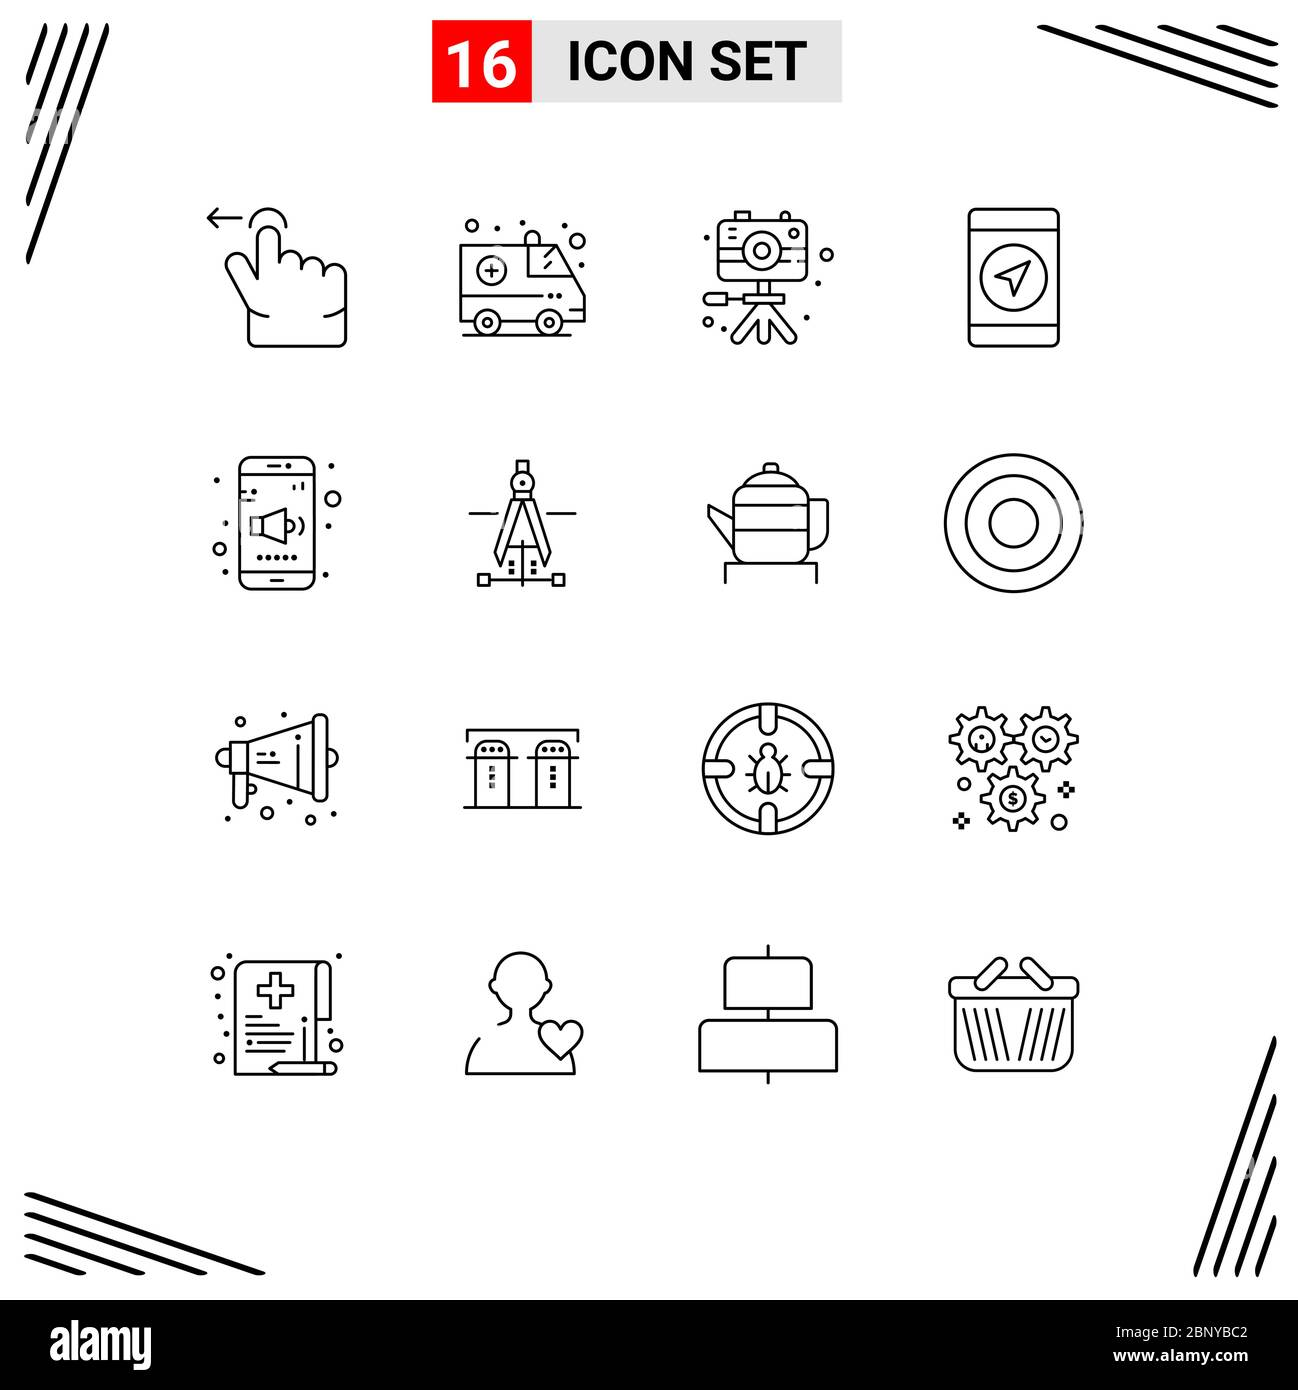 User Interface Pack of 16 Basic Outlines of compass, sound, hobbies, mobile, gps Editable Vector Design Elements Stock Vector